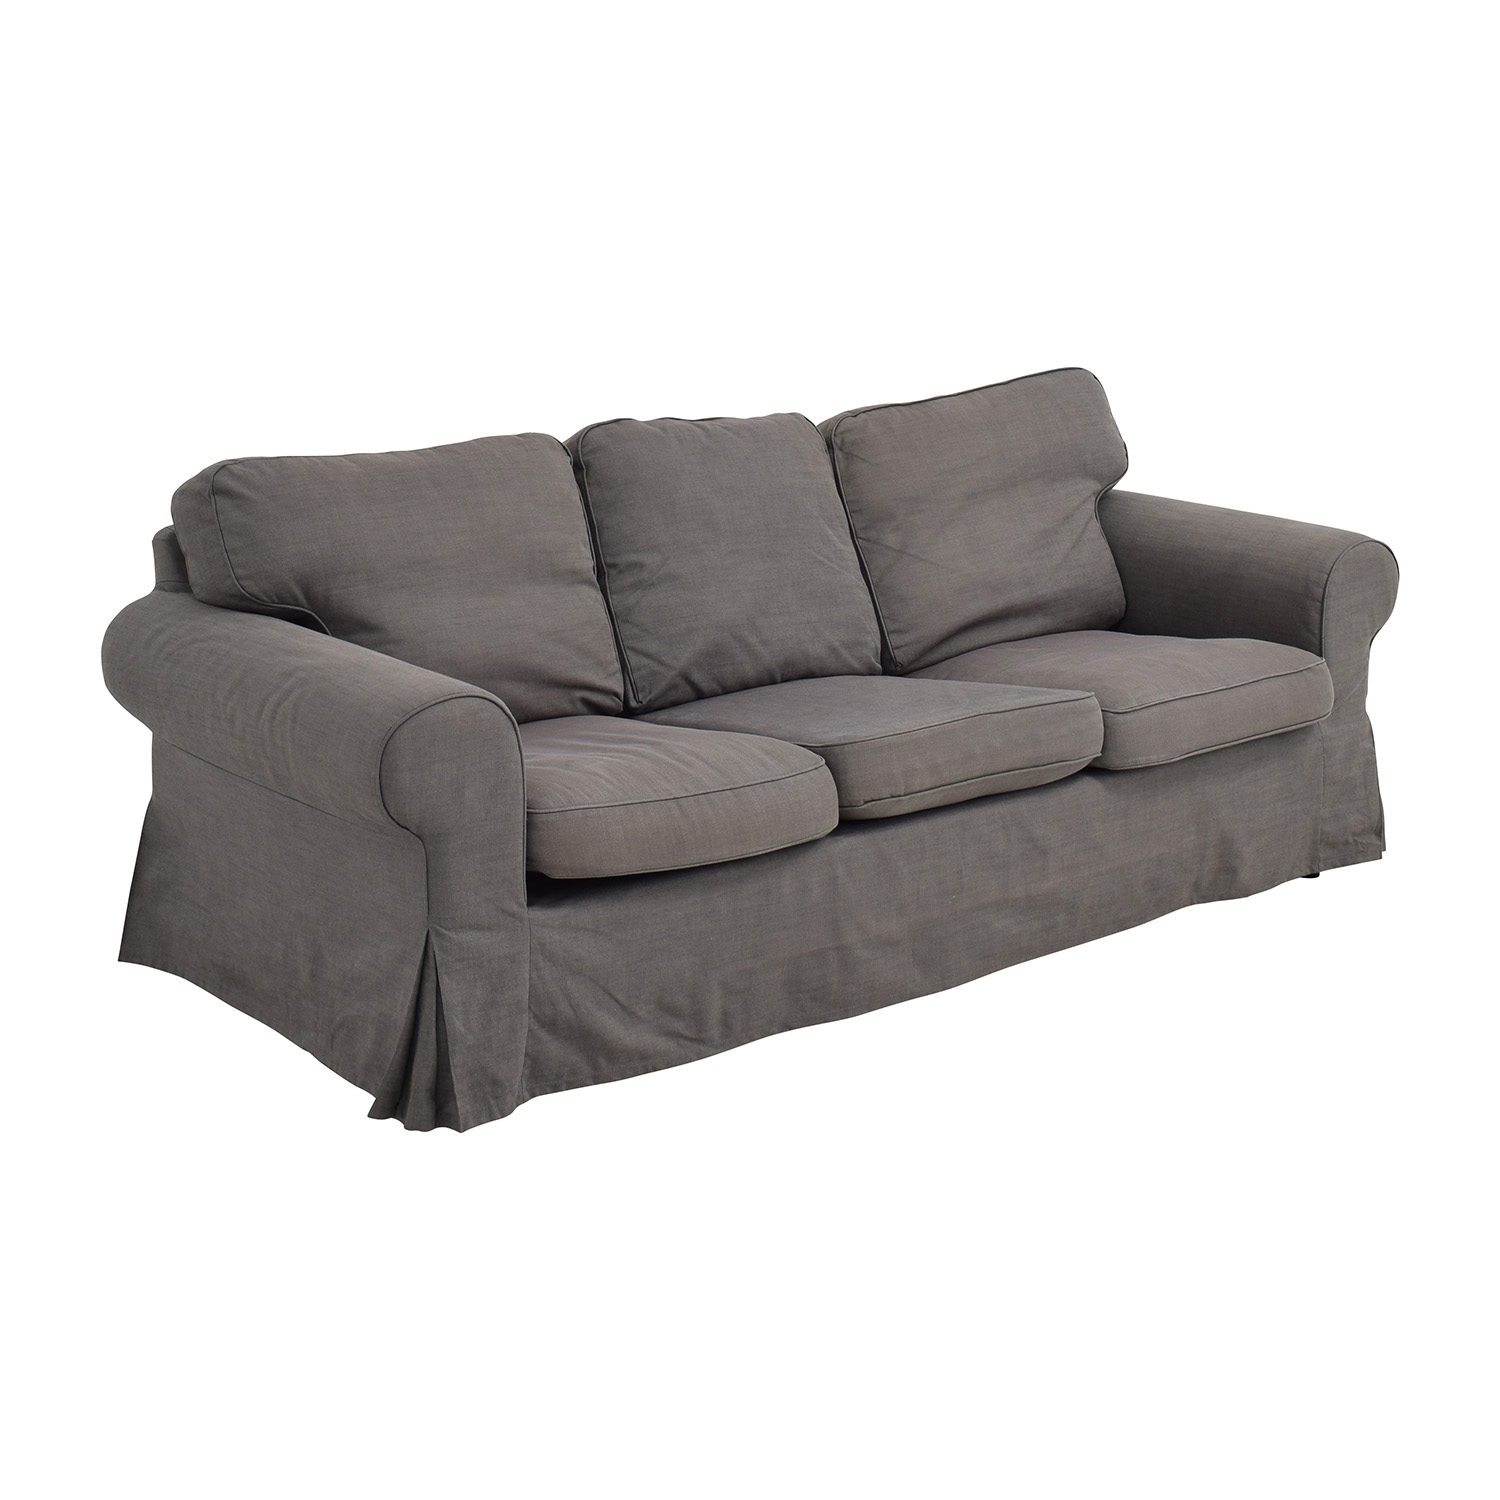 53 off ikea ikea ektorp grey skirted sofa sofas for Ikea gray sofa